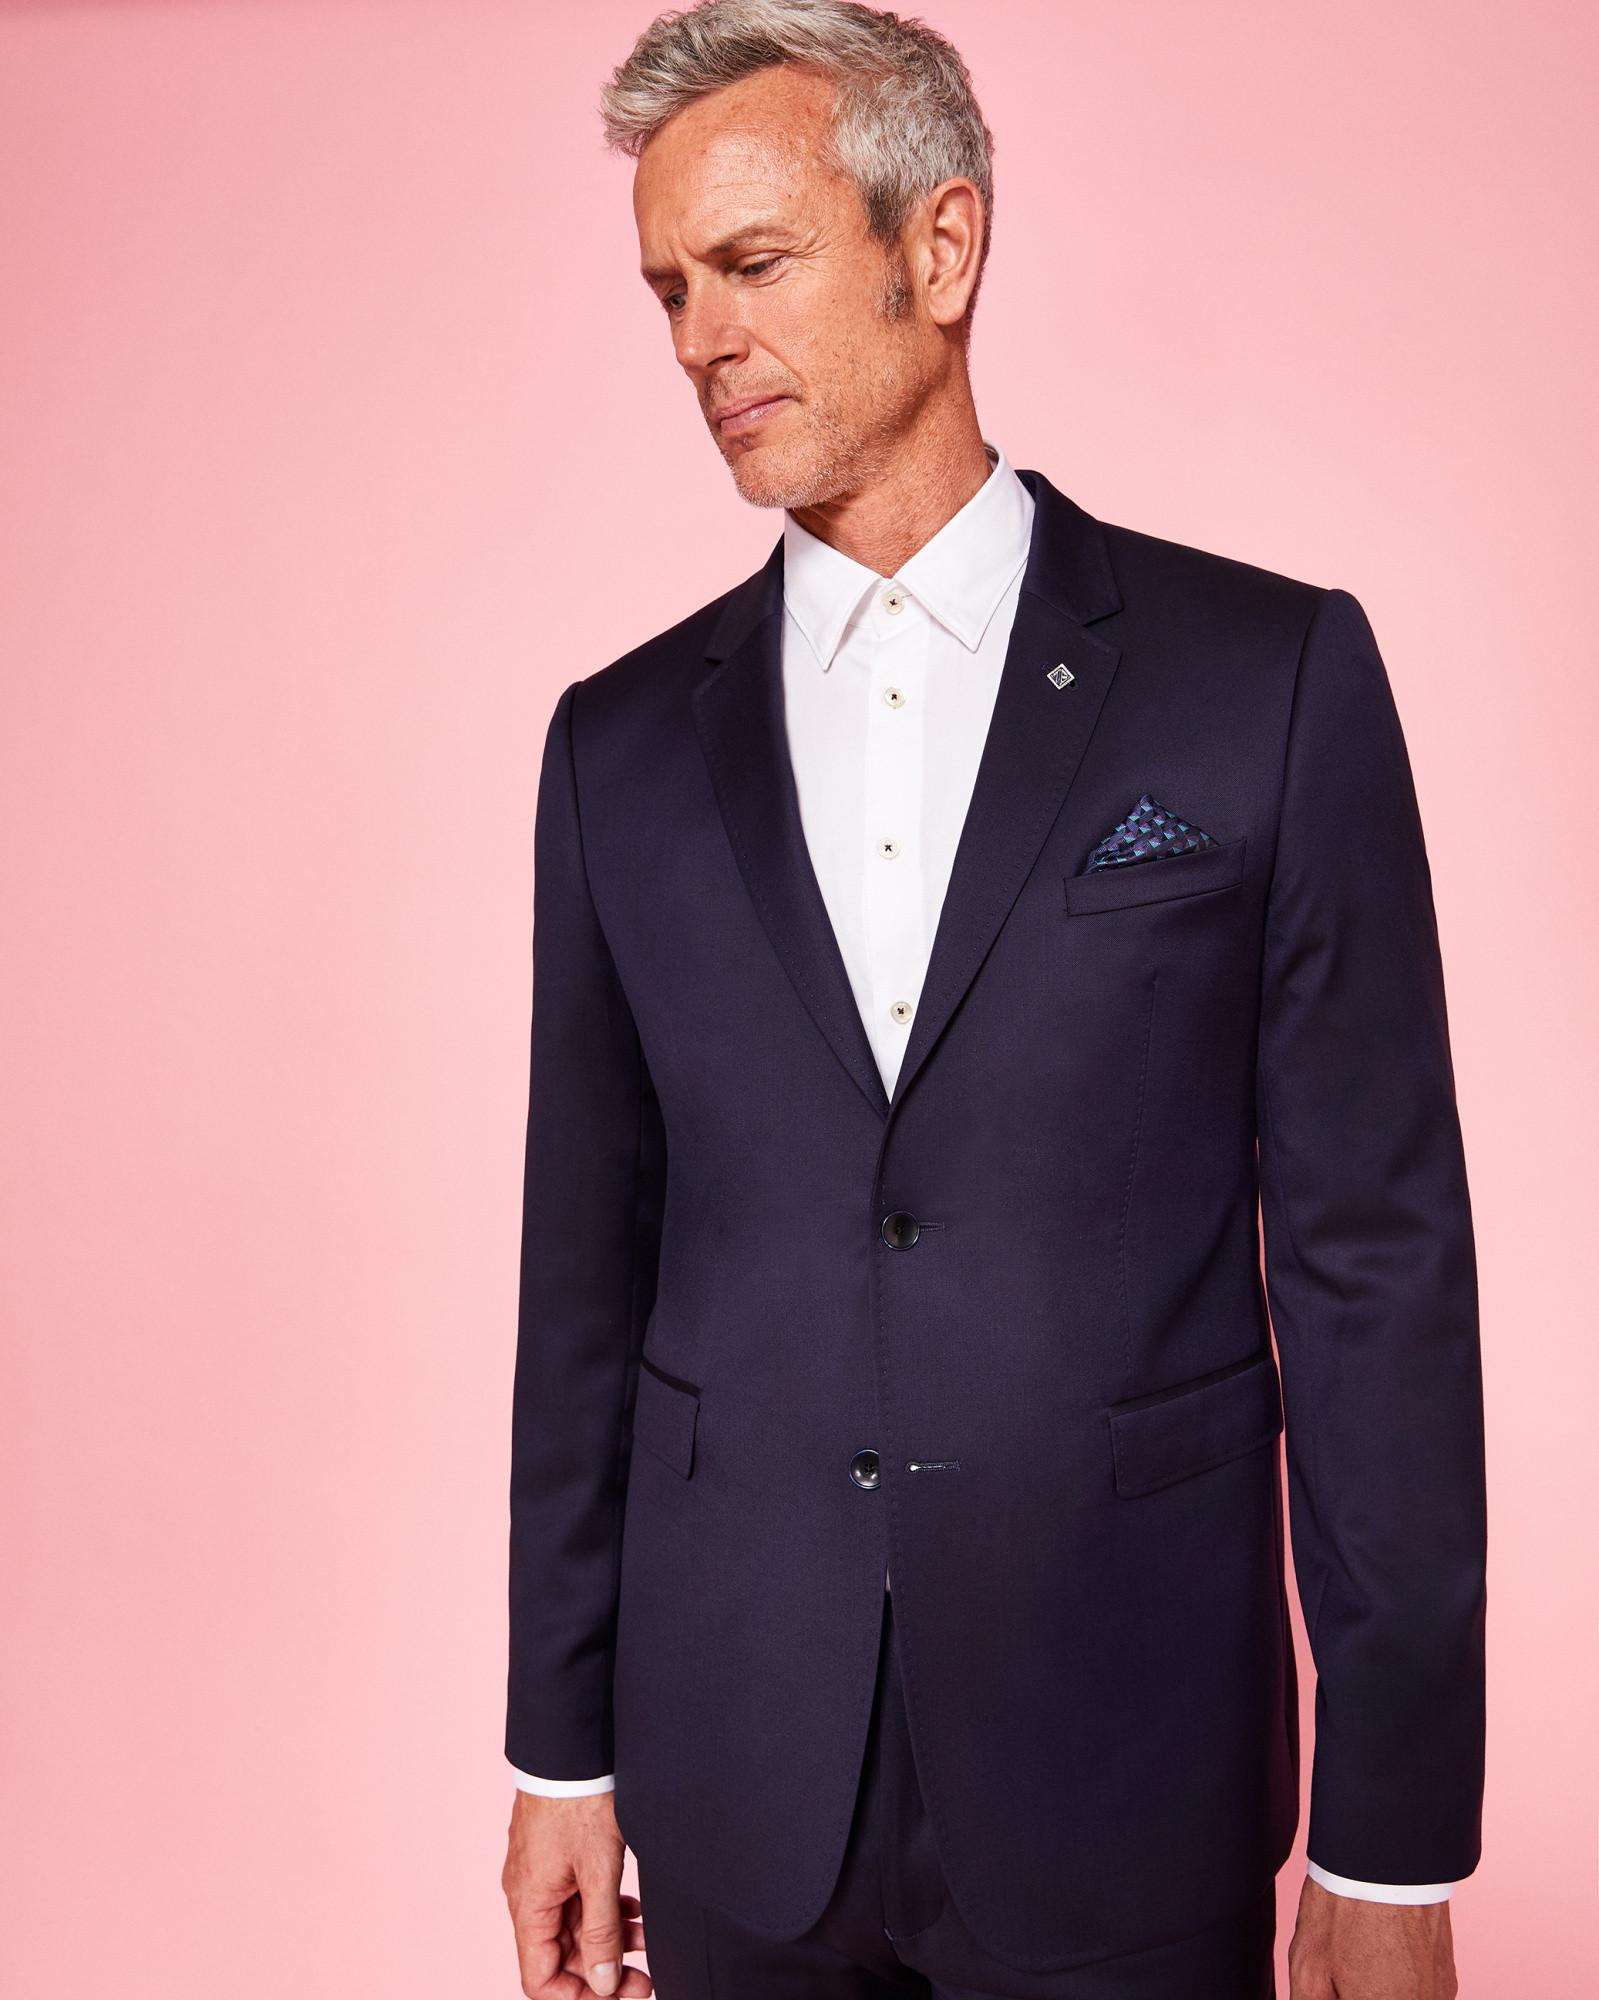 44e9348793e3cf Lyst - Ted Baker Debonair Wool Jacket in Blue for Men